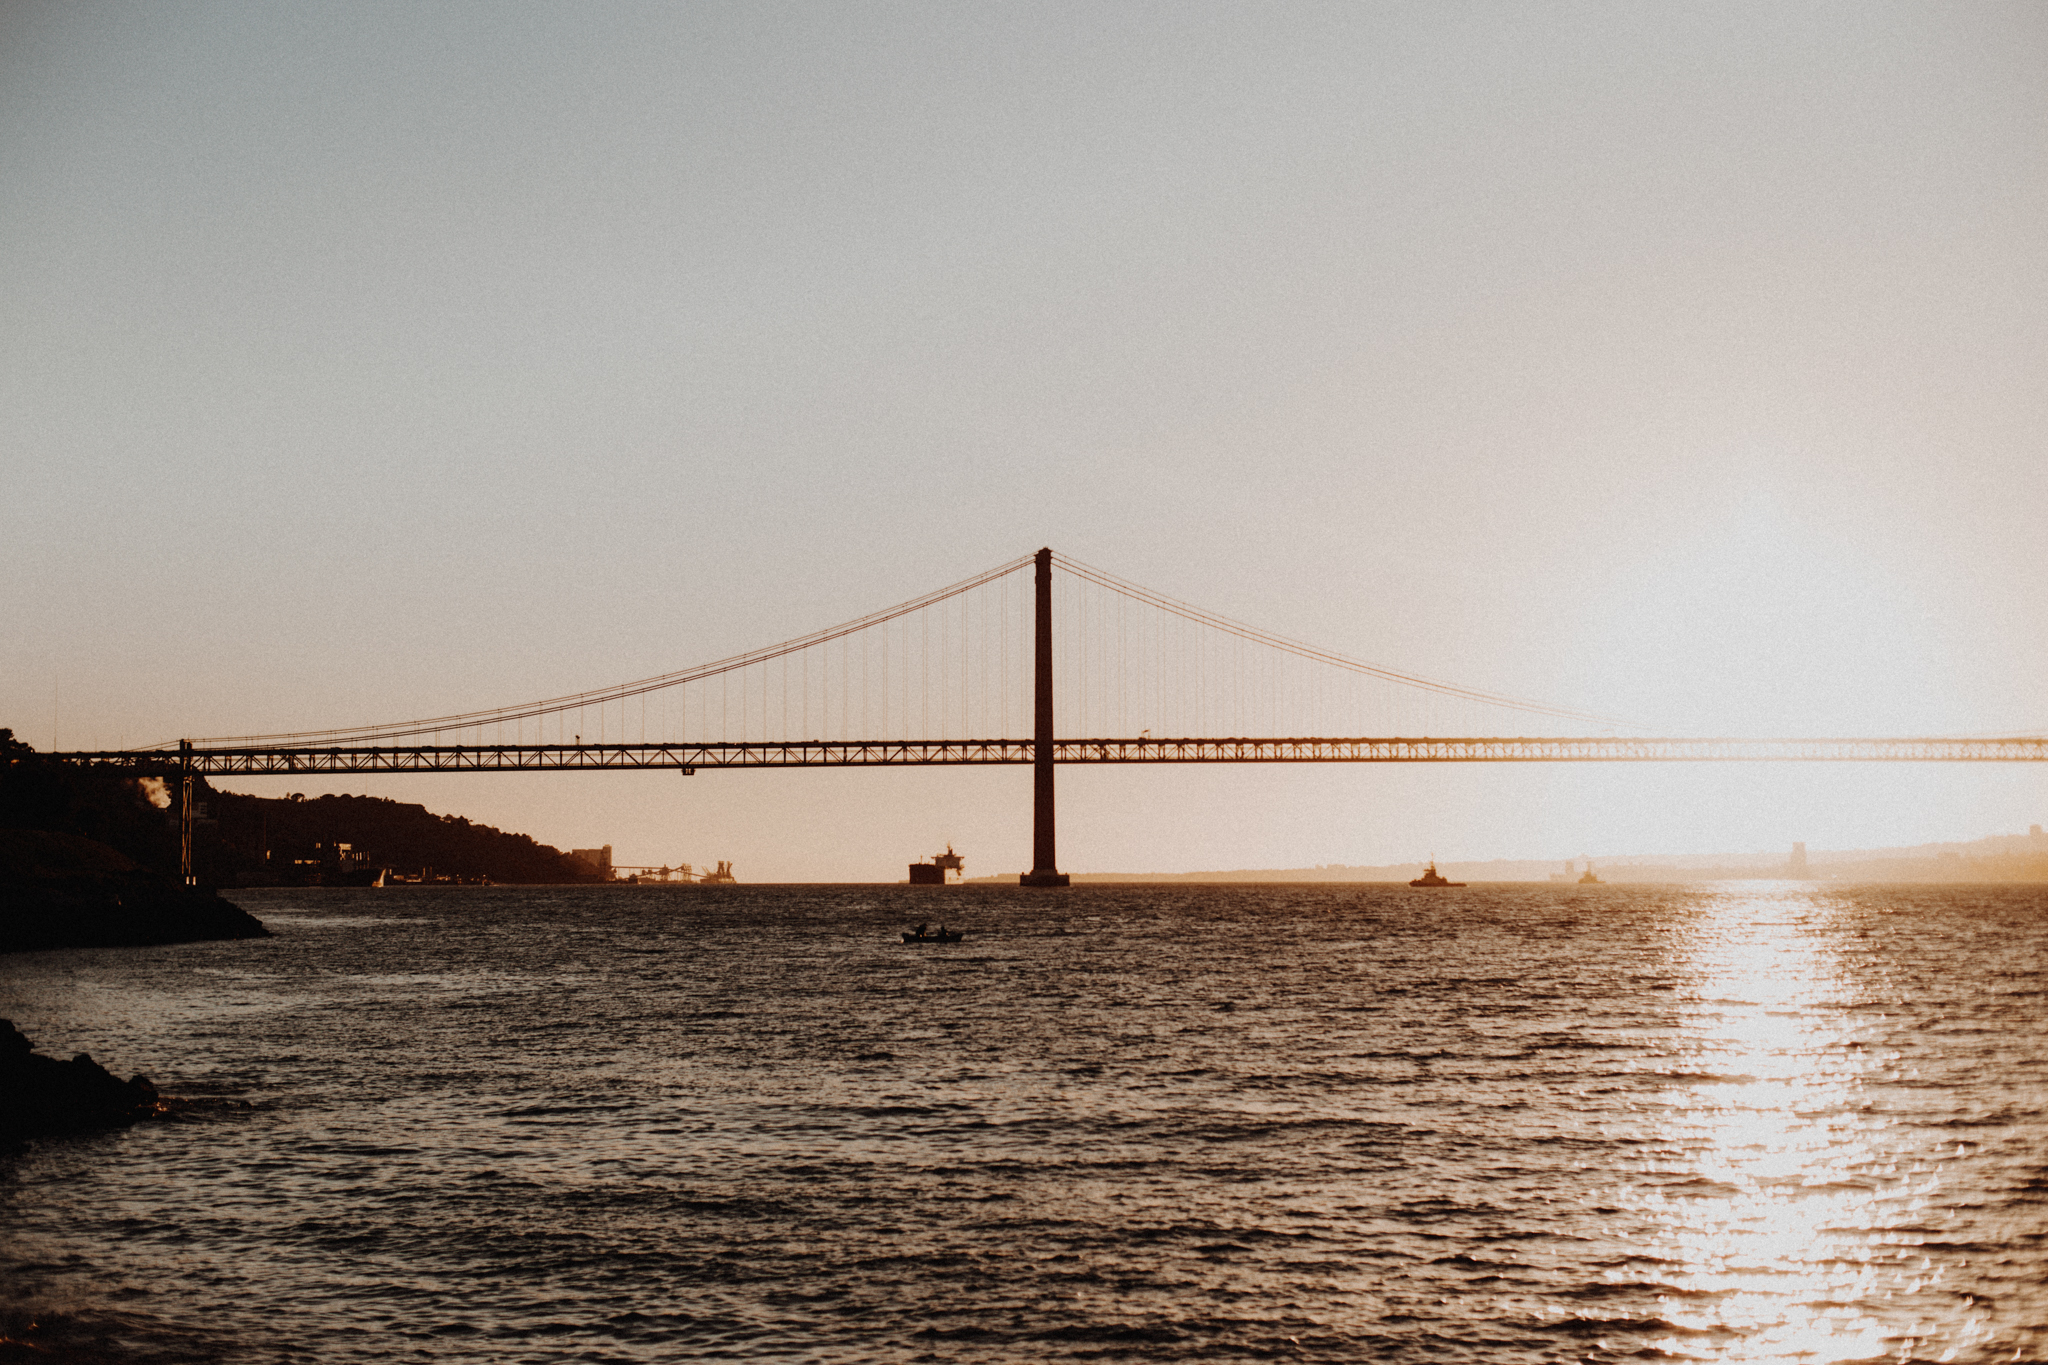 Ponte 25 de Abril bridge during sunset on tagus river